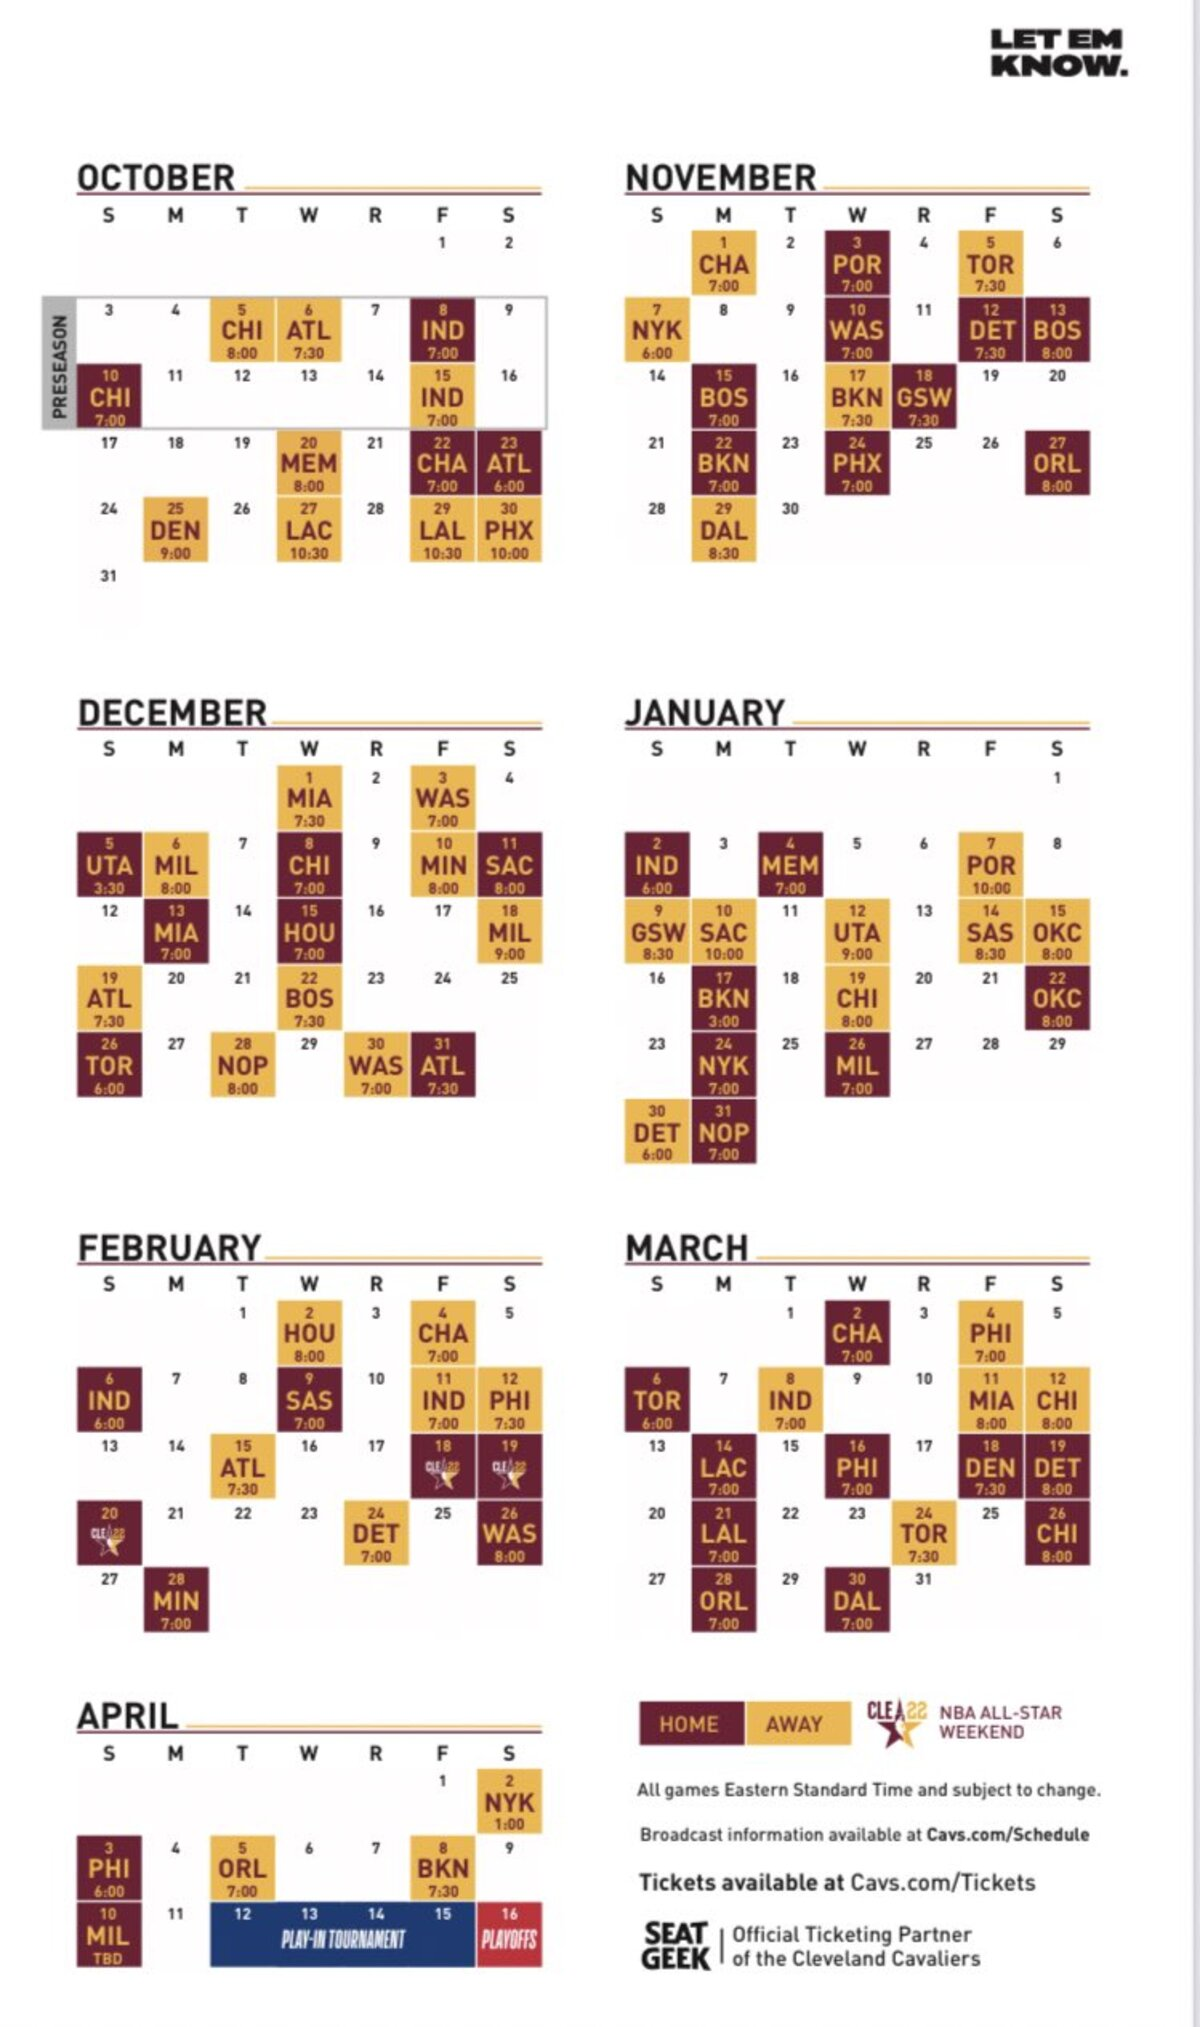 Report: Cavs release full schedule for 2021-22 season - Cavaliers Nation